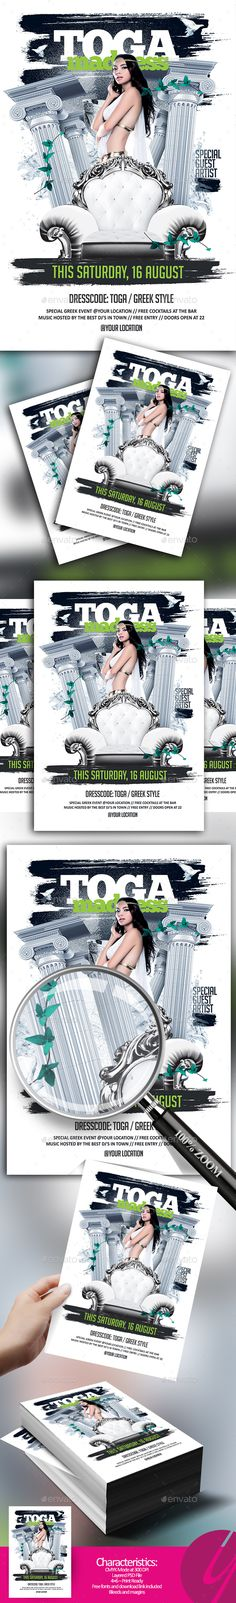 Toga Madness Flyer - Clubs & Parties Events